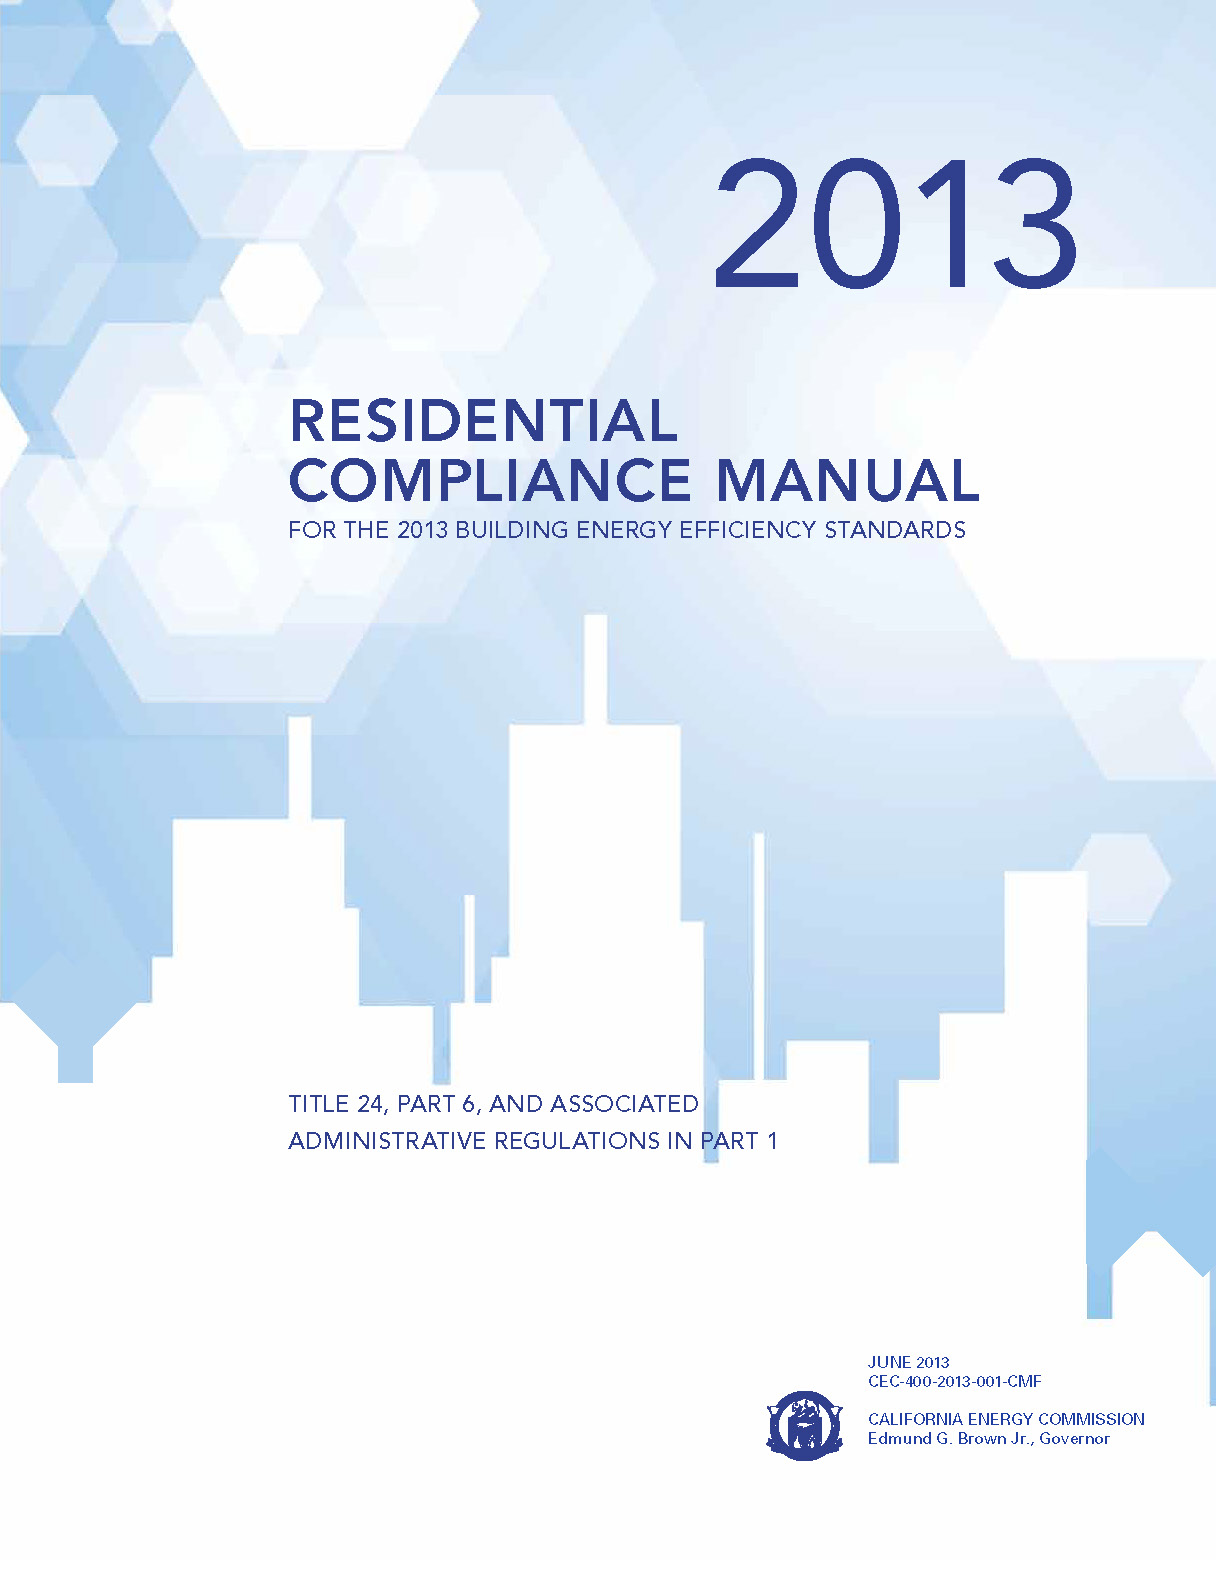 2013 Residential Compliance Manual Introduction